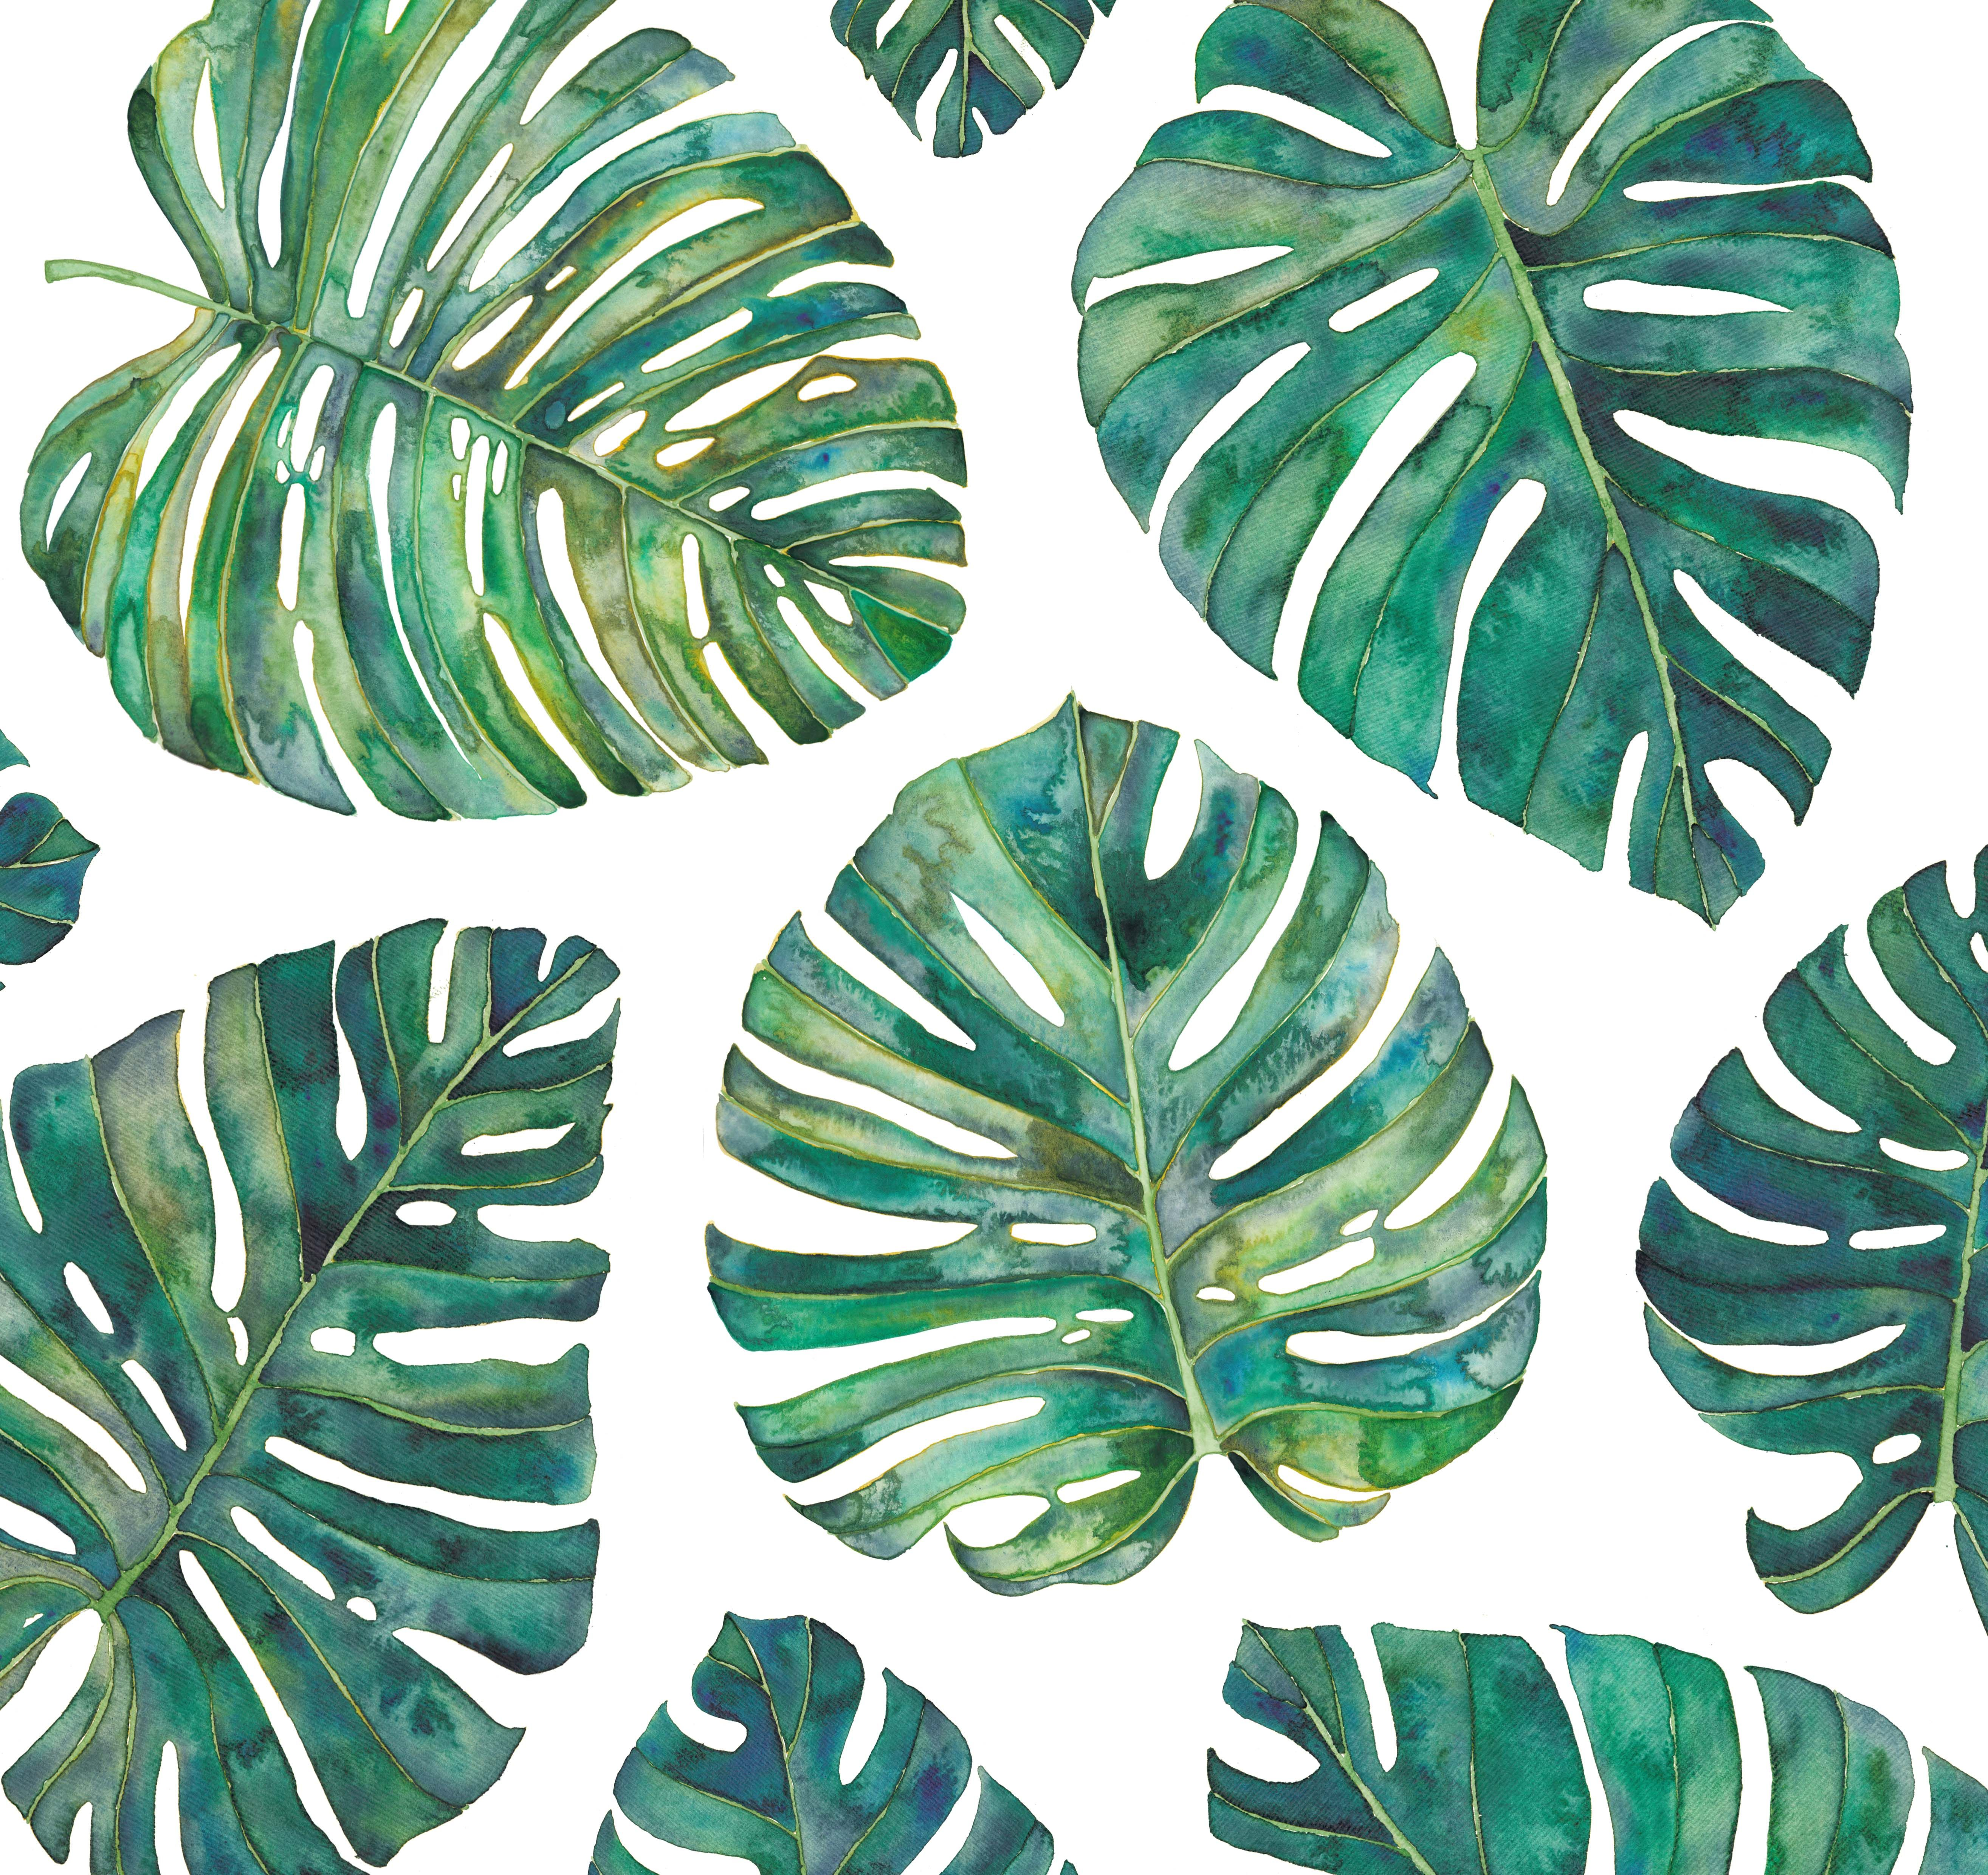 Temporary Fabric Wallpaper Tropical Leaves Fabric By The Yard Fabric Cotton Fabric